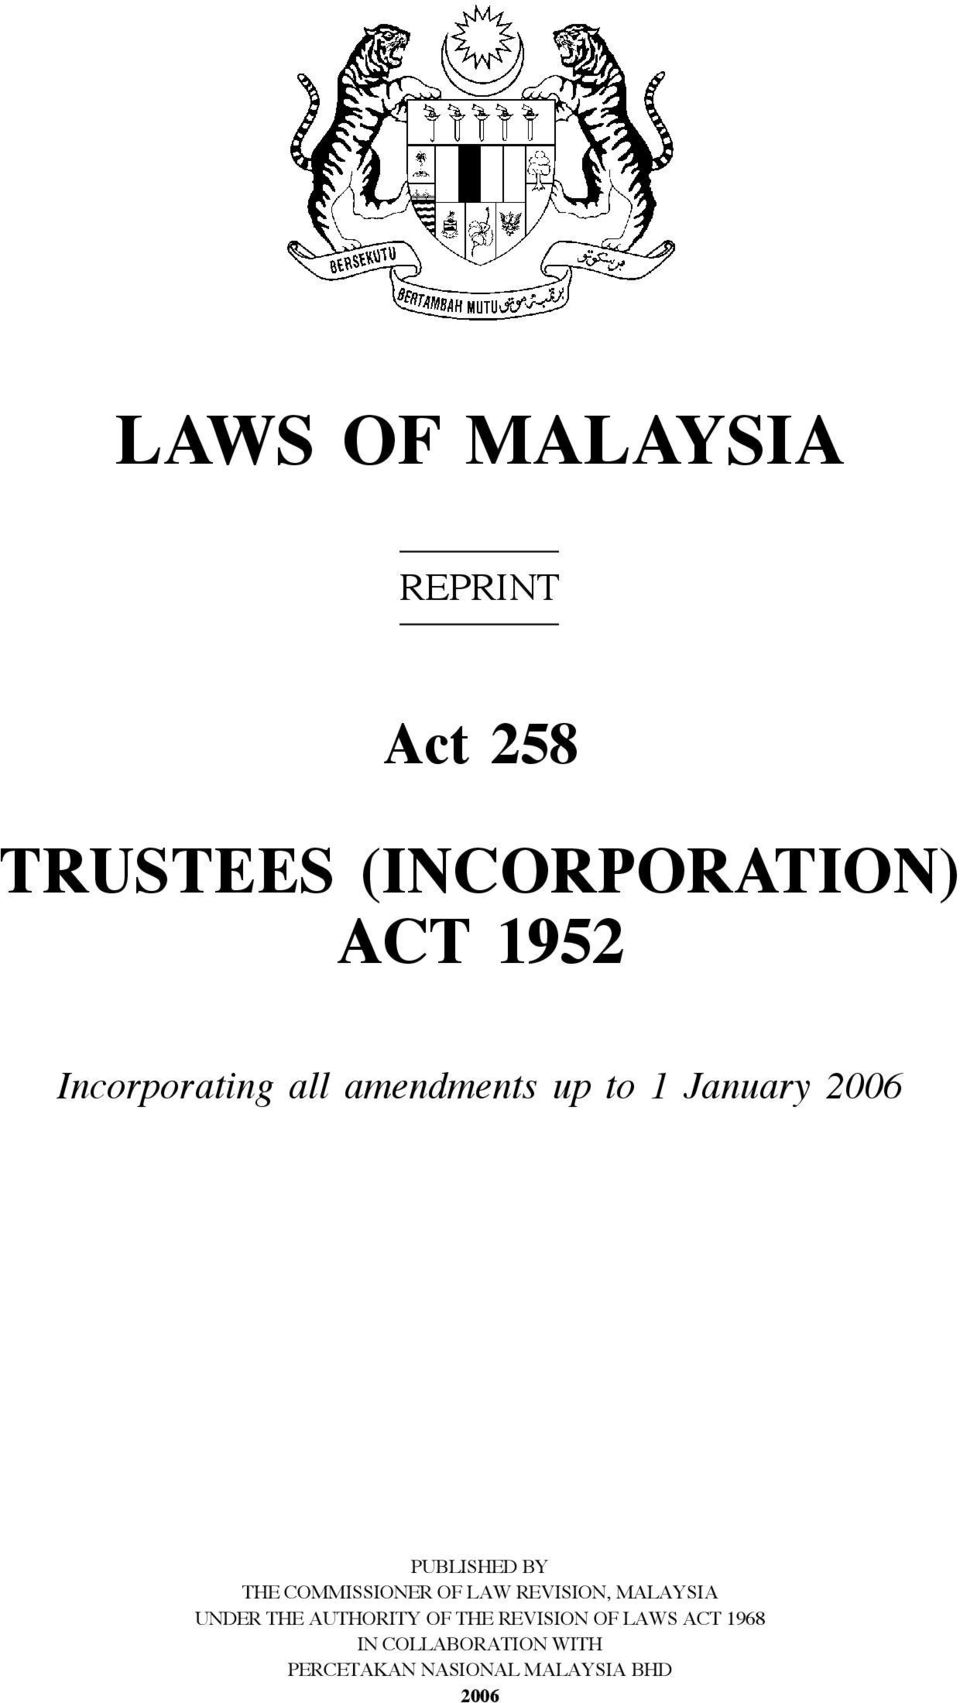 COMMISSIONER OF LAW REVISION, MALAYSIA UNDER THE AUTHORITY OF THE